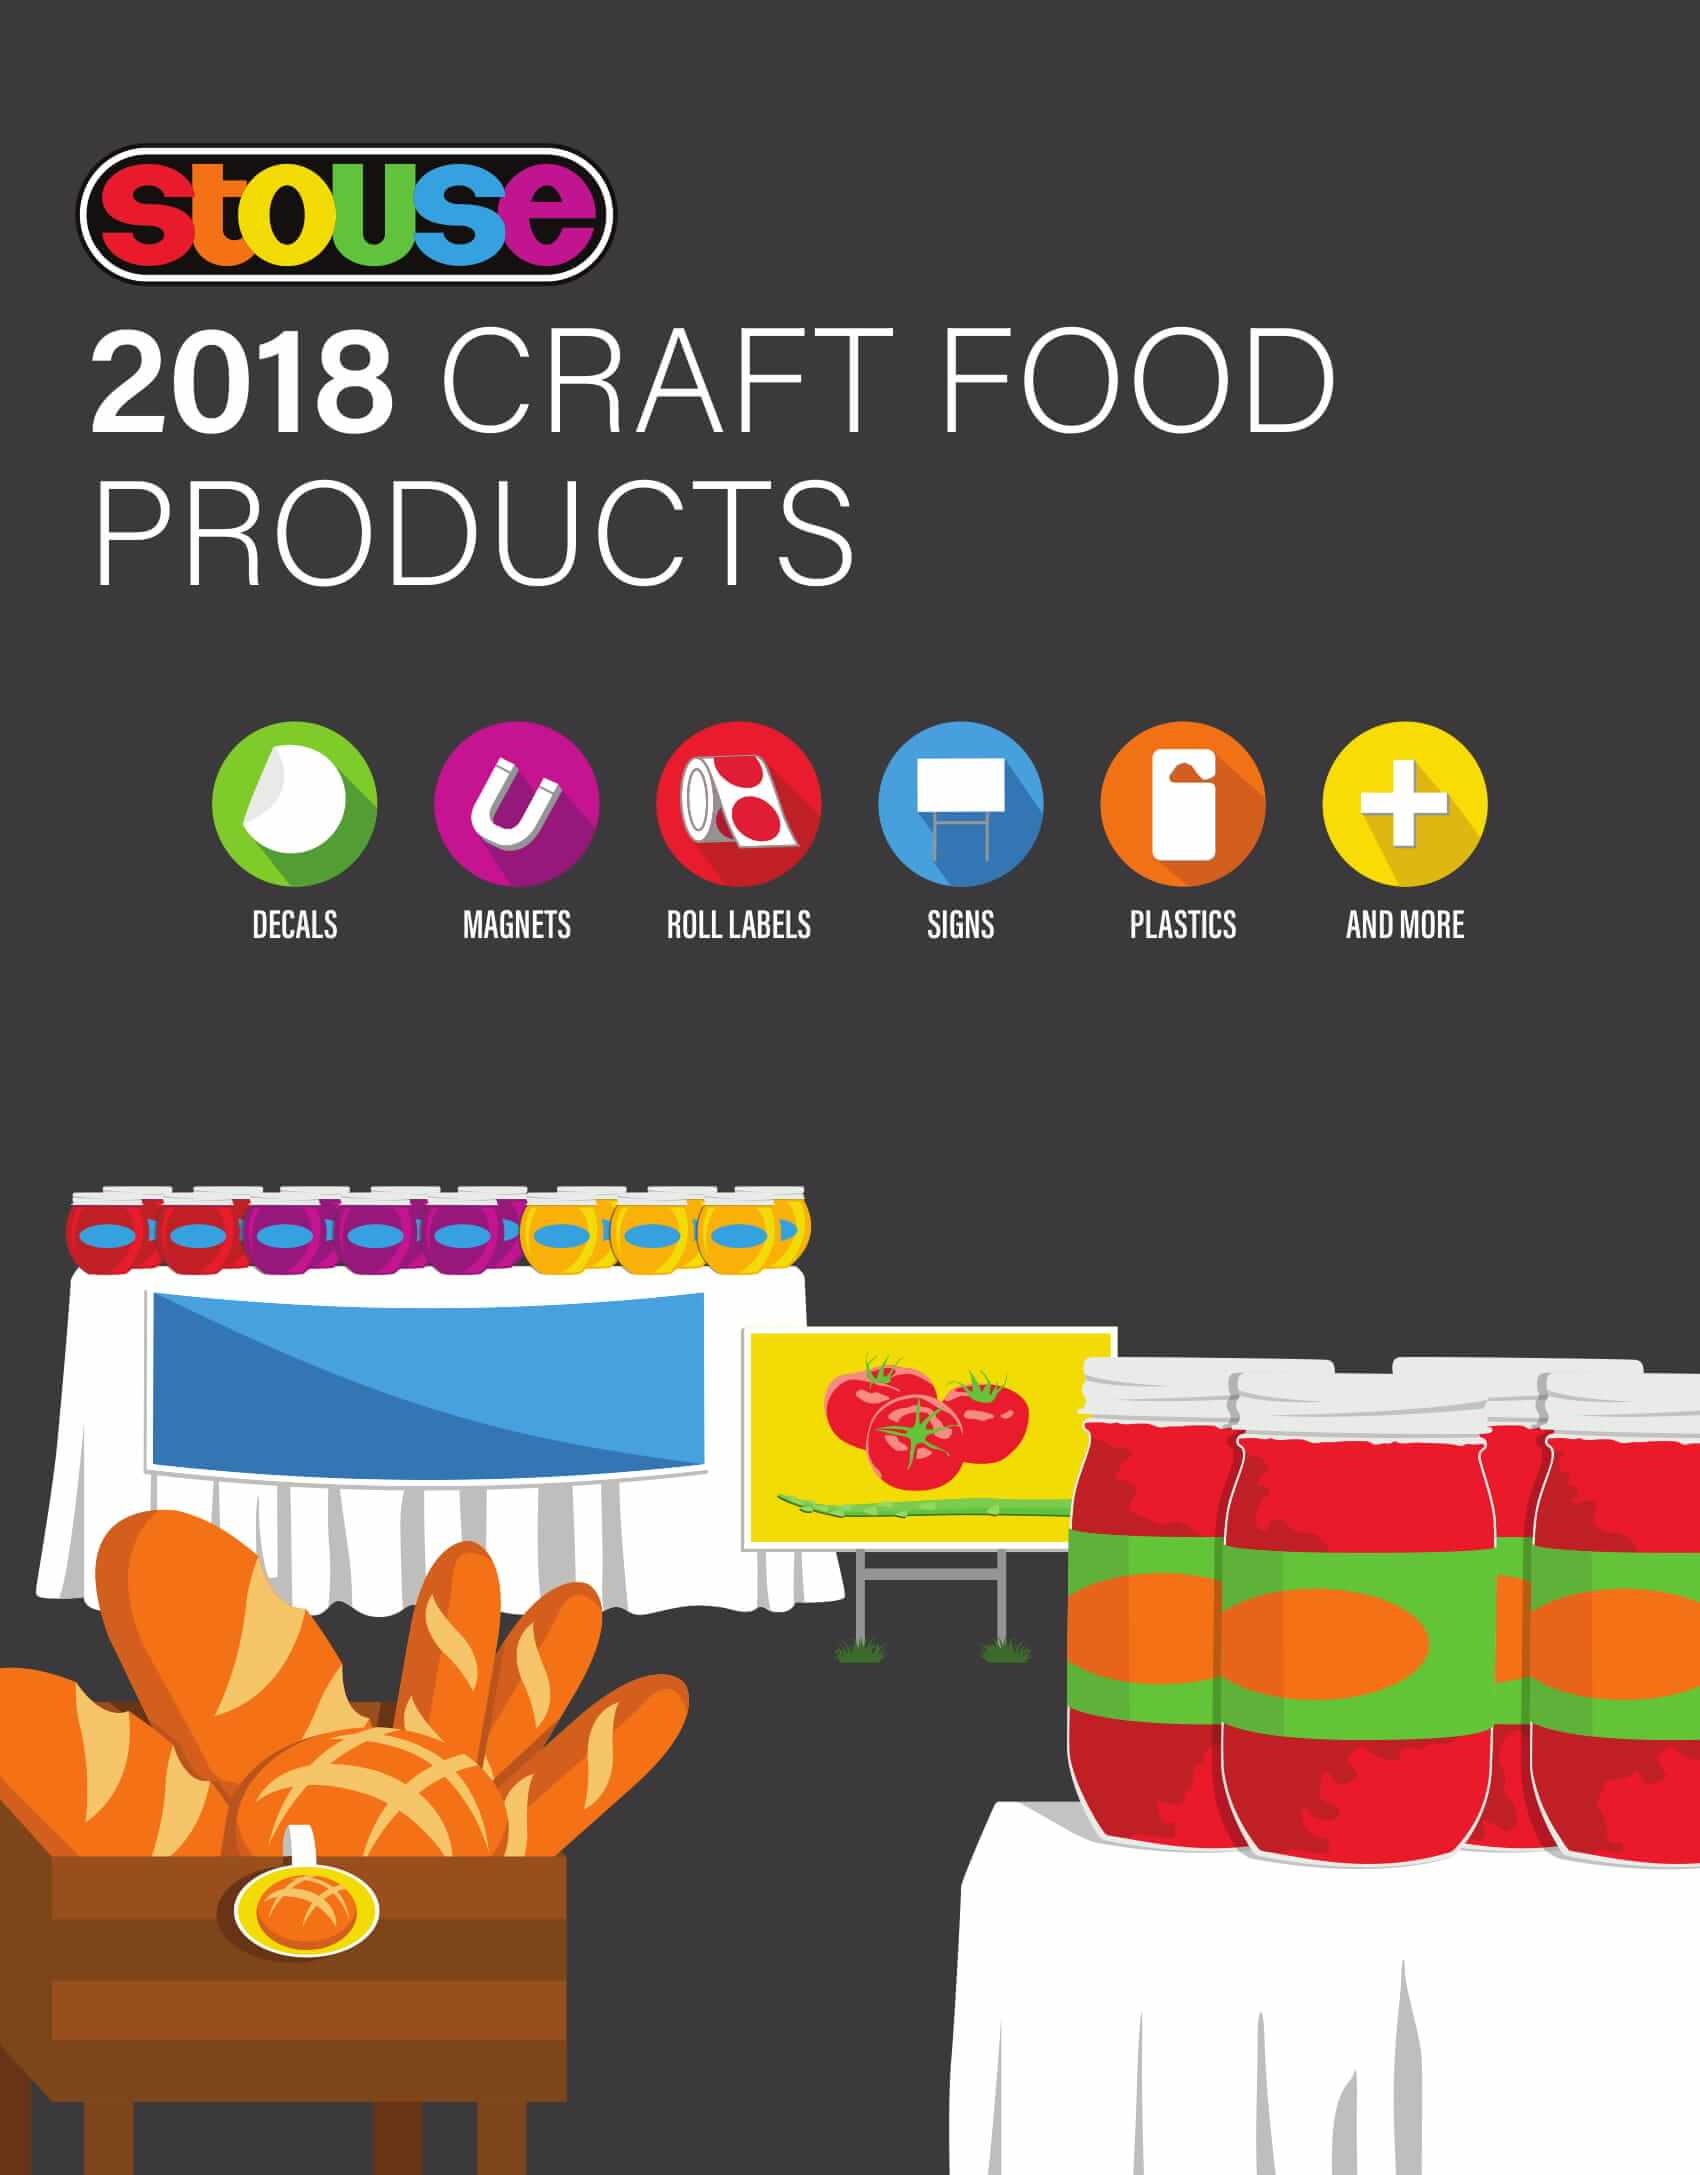 2018 Craft Food Products